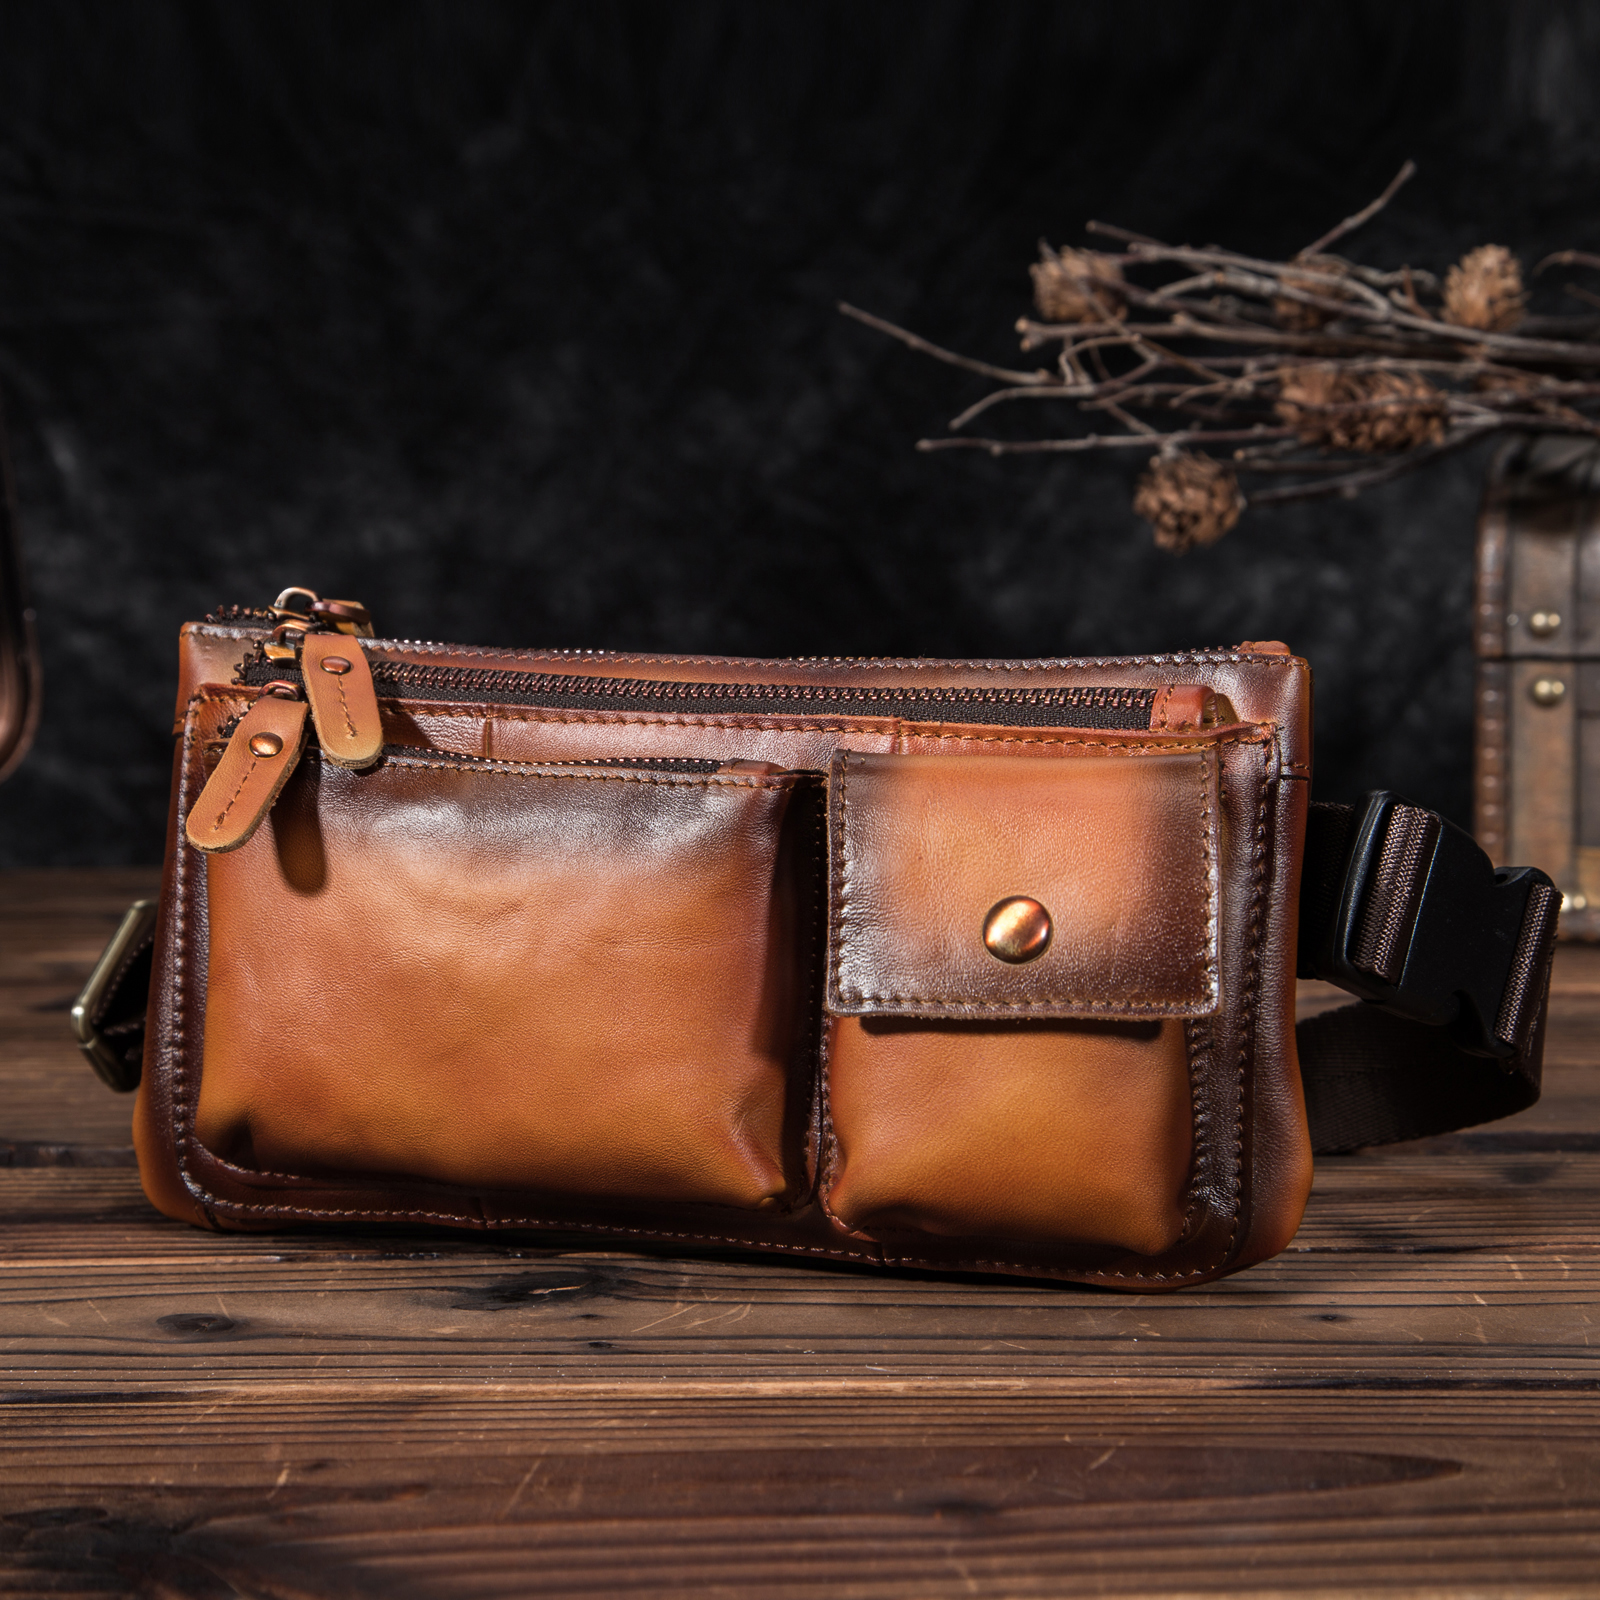 New Genuine Leather Men Casual Fashion Travel Fanny Waist Belt Chest Pack Sling Bag Design Phone Cigarette Case Male 811-29-o